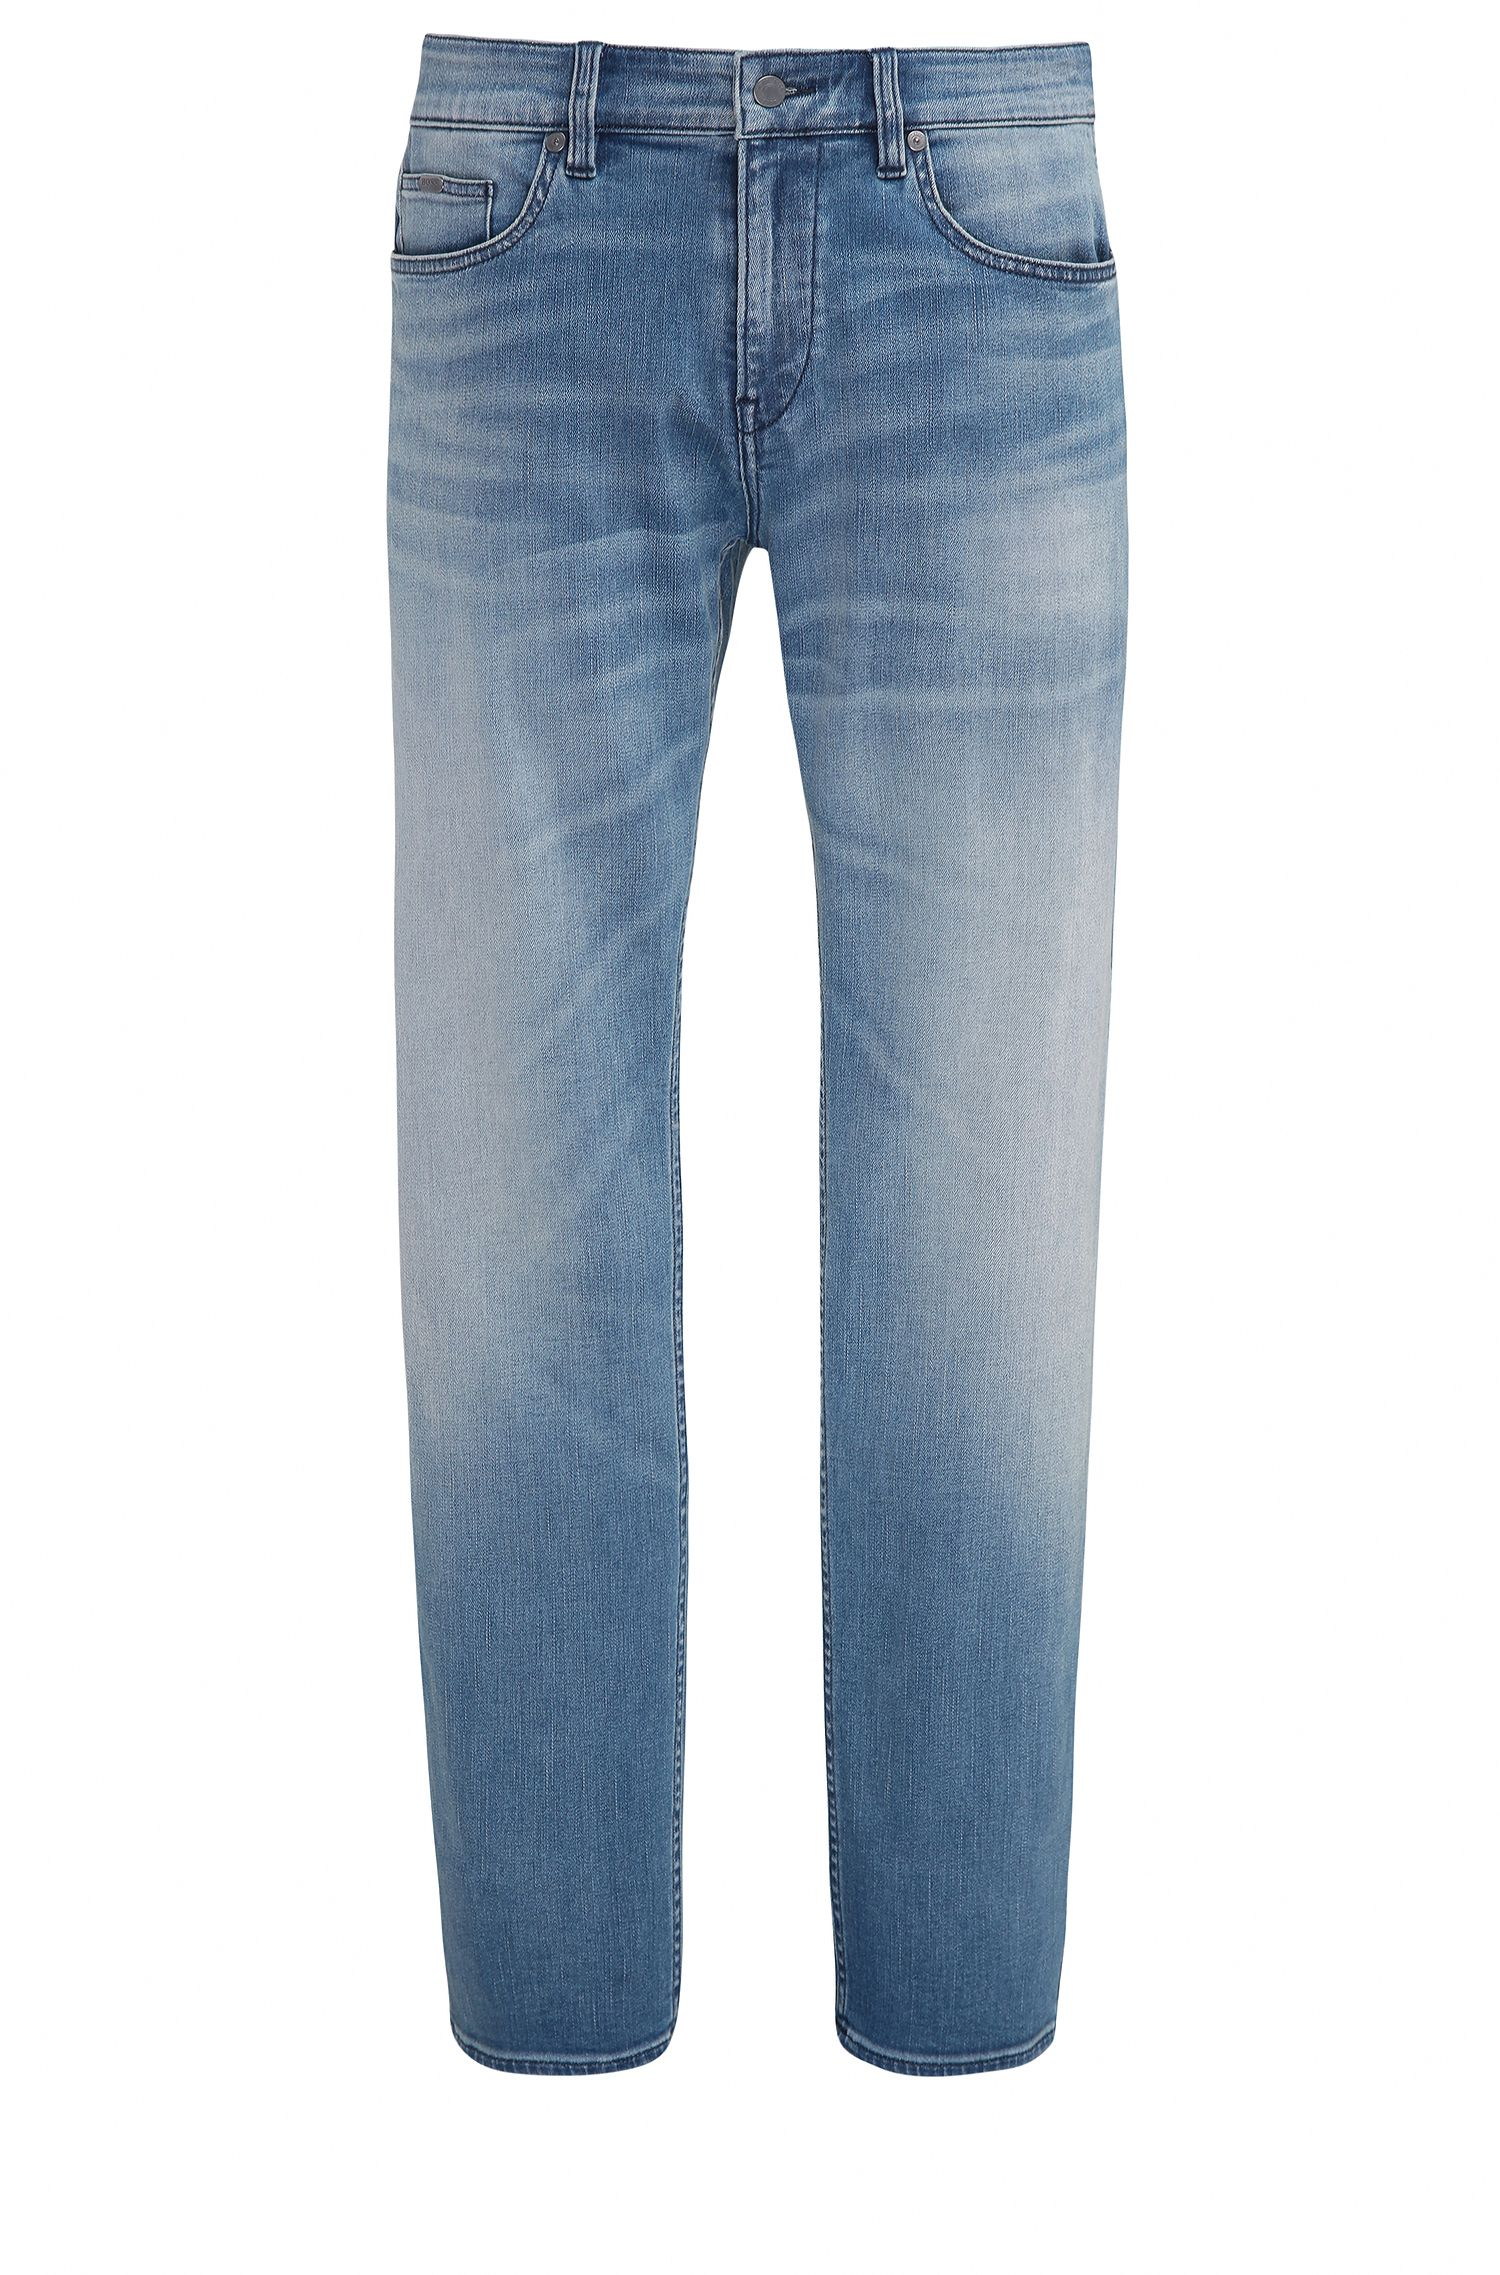 Jeans Slim Fit en denim ultra stretch